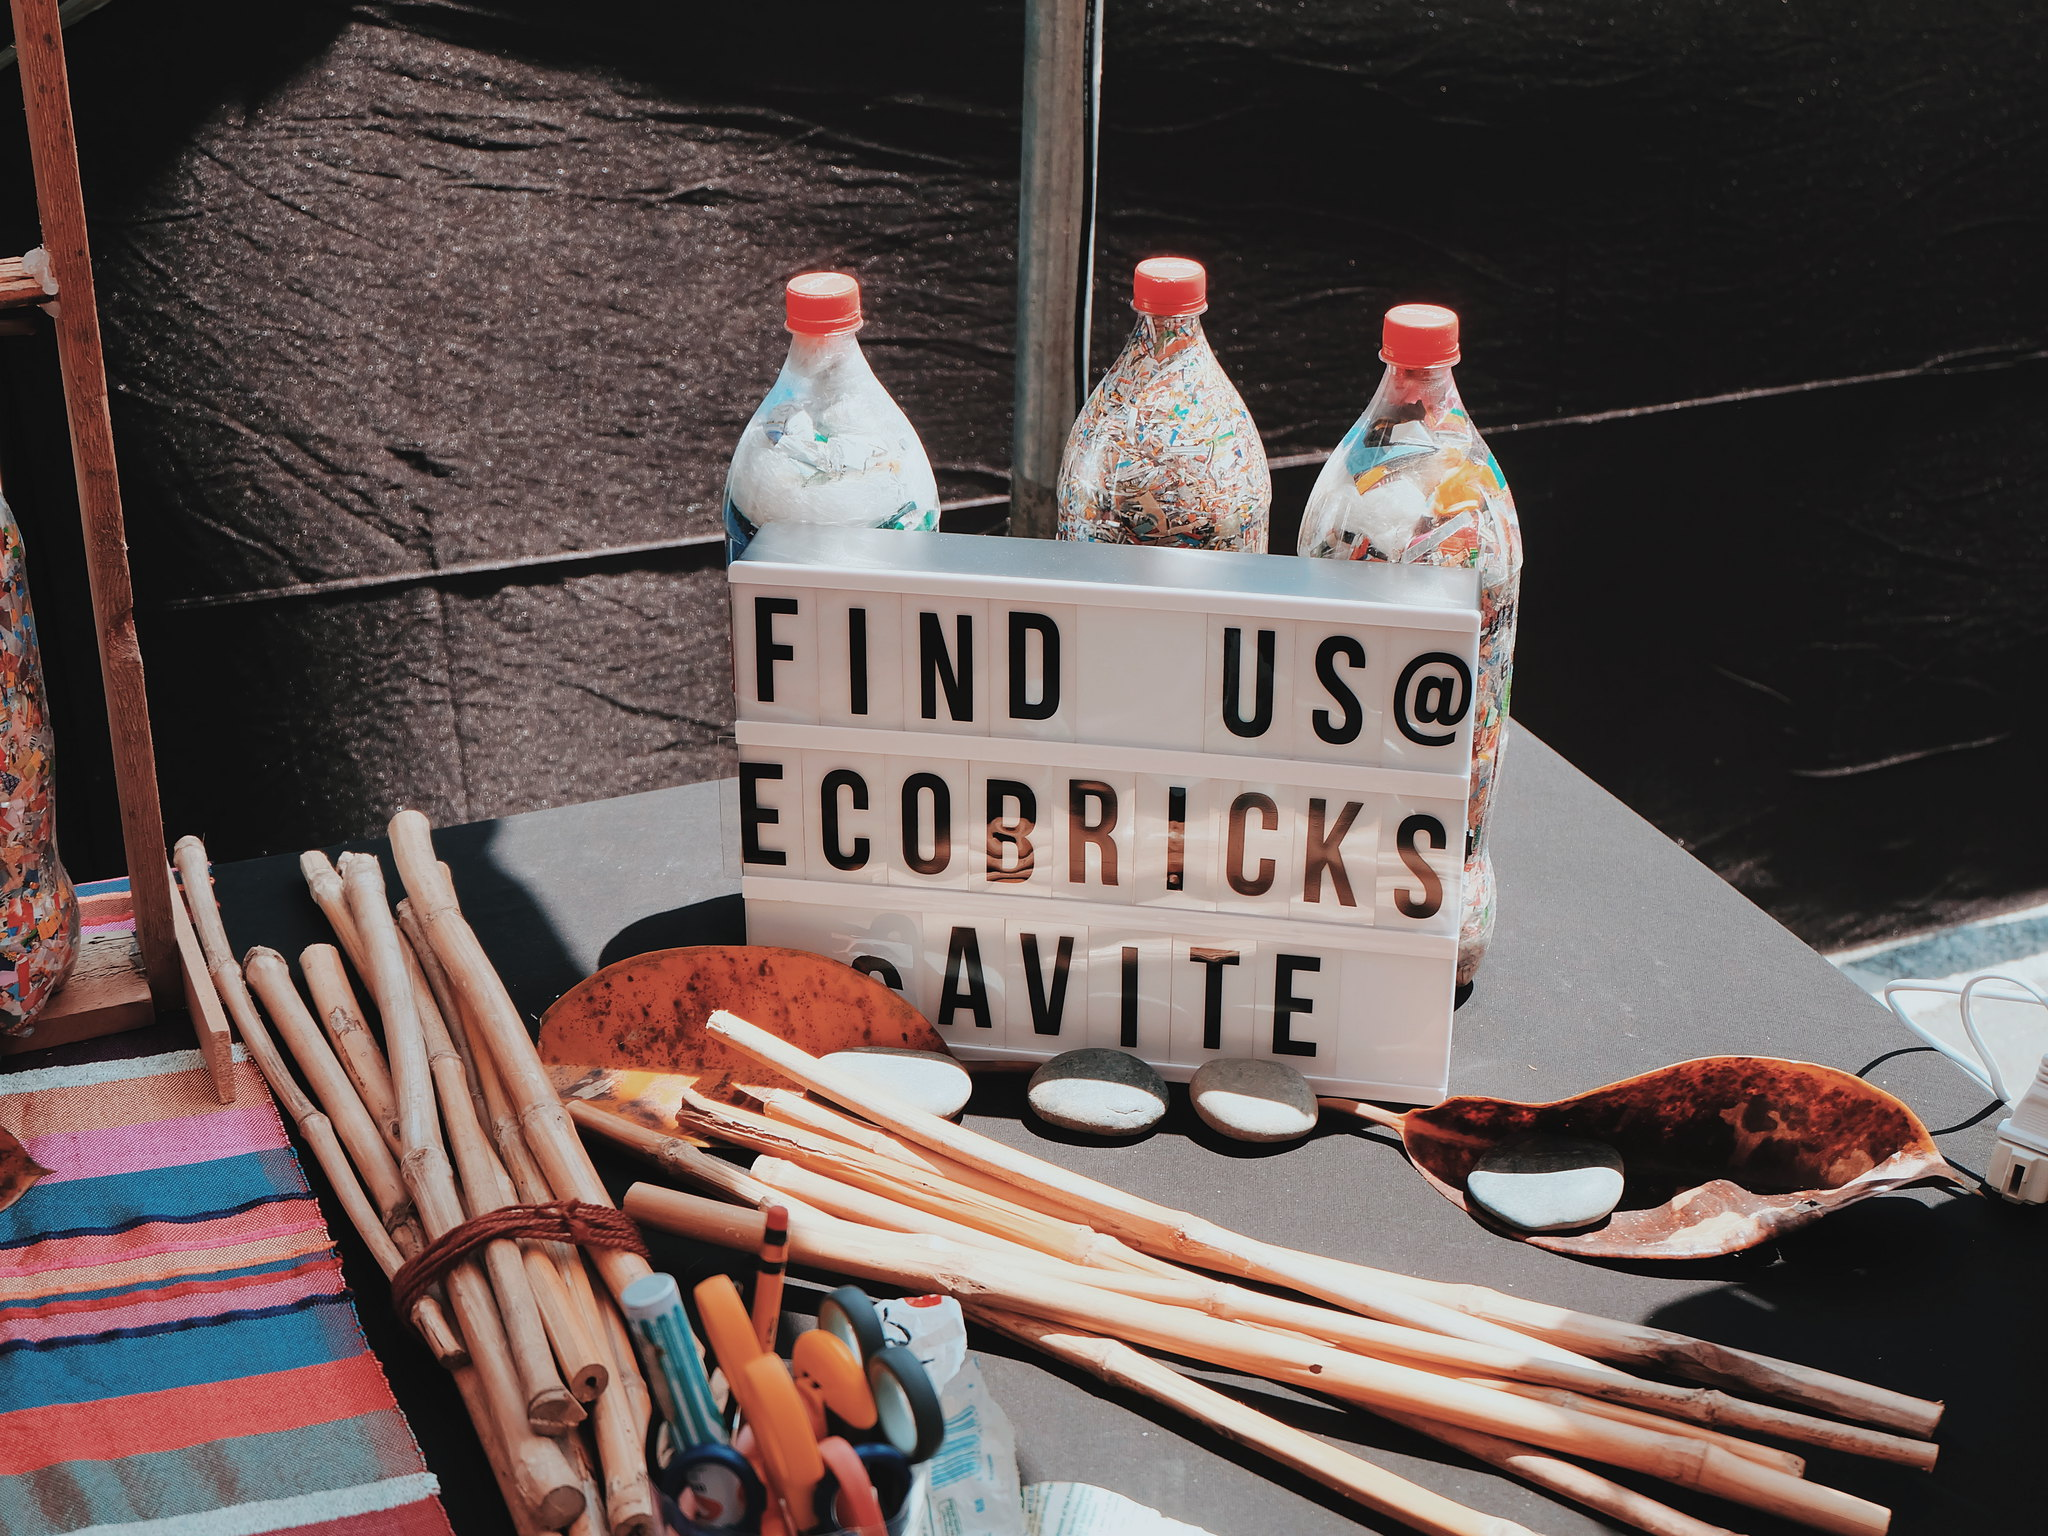 EcoBricks Cavite Juan Earth